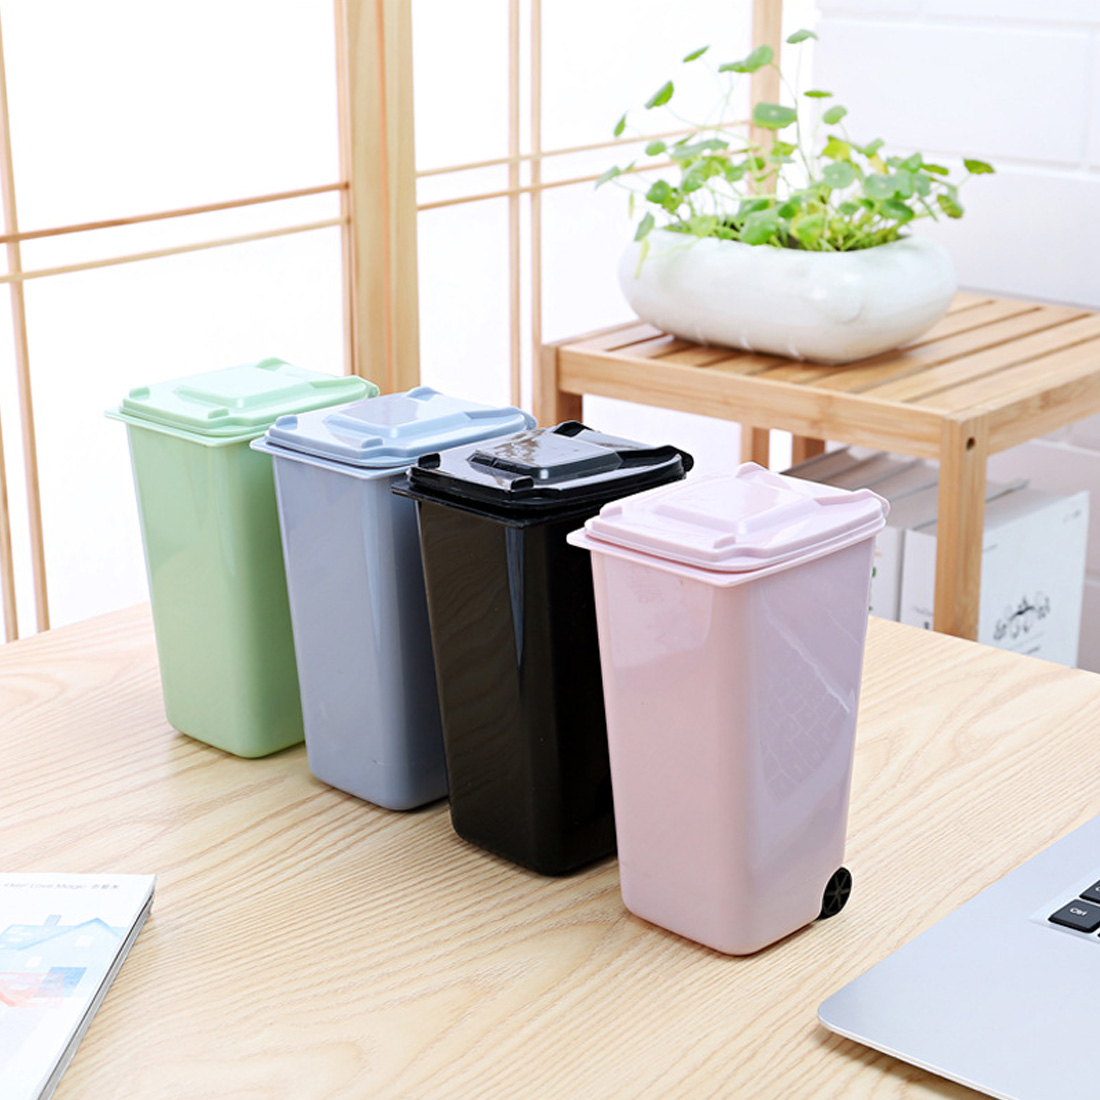 Small Kitchen Trash Cans Us 1 97 13 Off 4 Color Mini Waste Bins Kitchen Trash Can Dustbin Small Scissors Pencil Cup Rulers 10 8 15 5cm Health Barrels In Waste Bins From Home